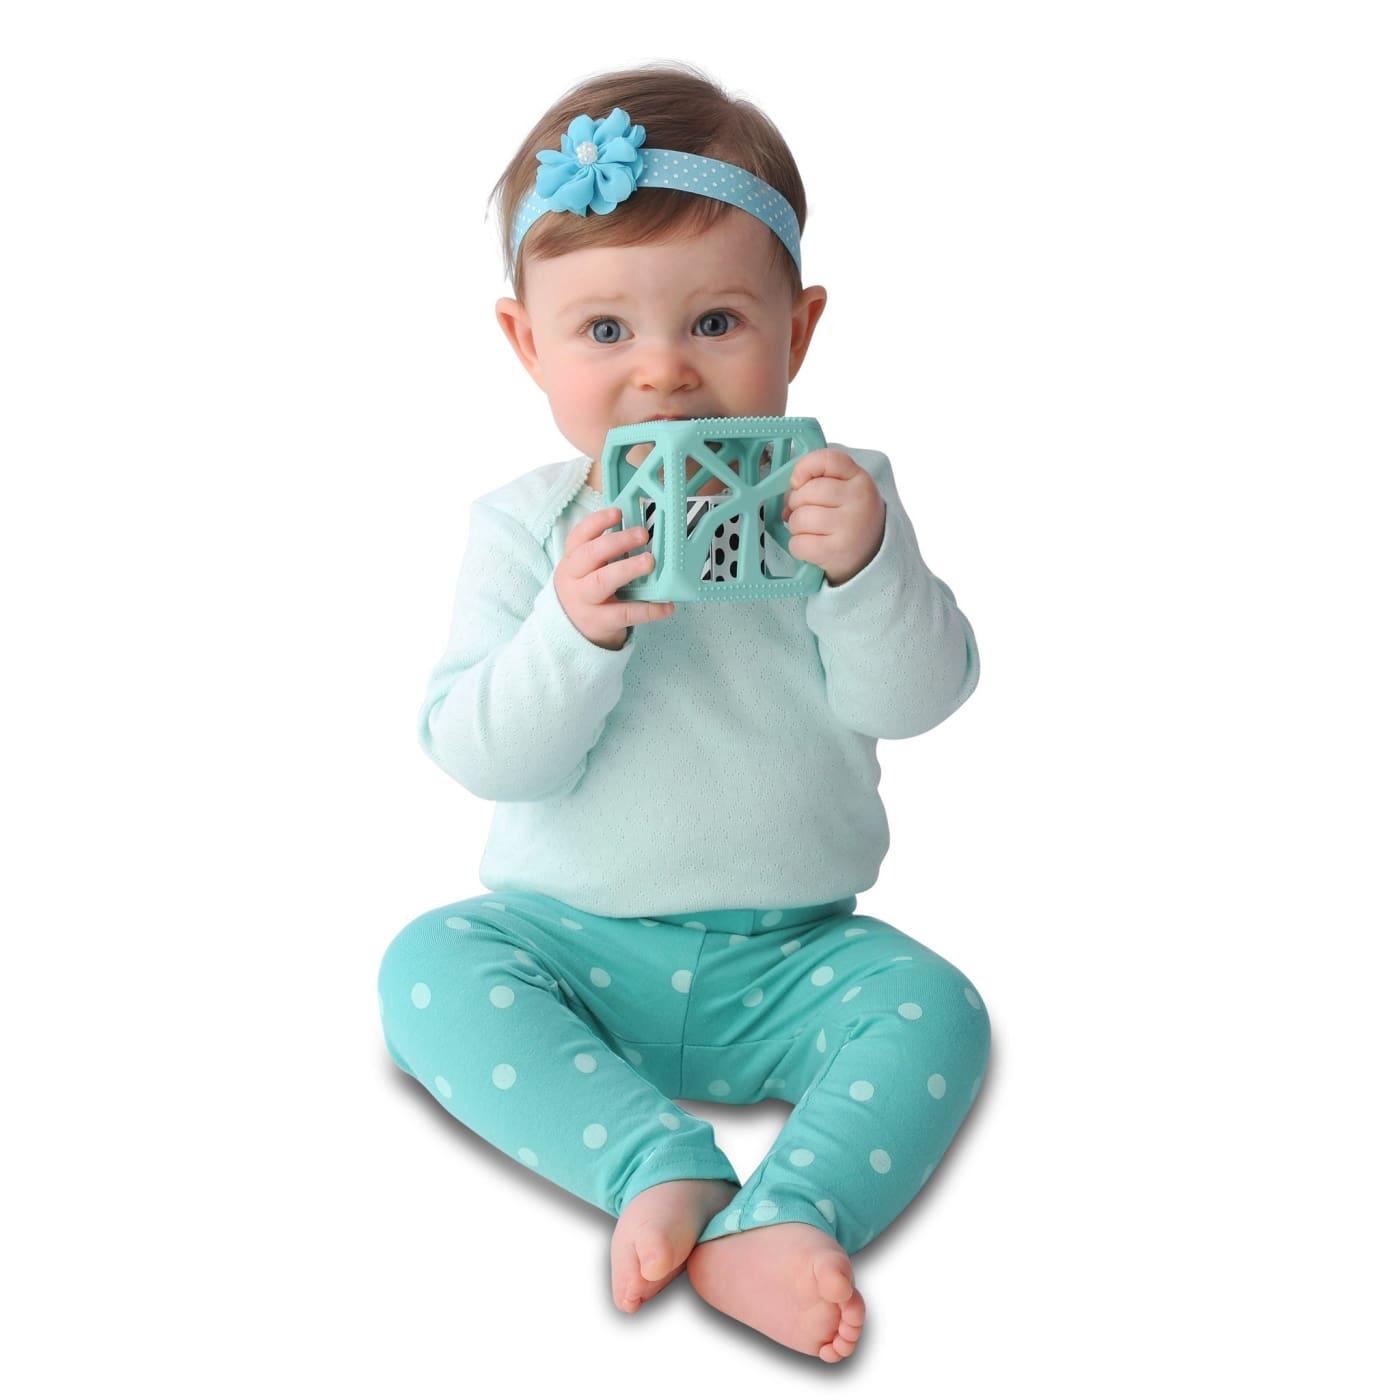 Malarkey Kids Chew Cube - Mint - NURSING & FEEDING - TEETHERS/TEETHING JEWELLERY